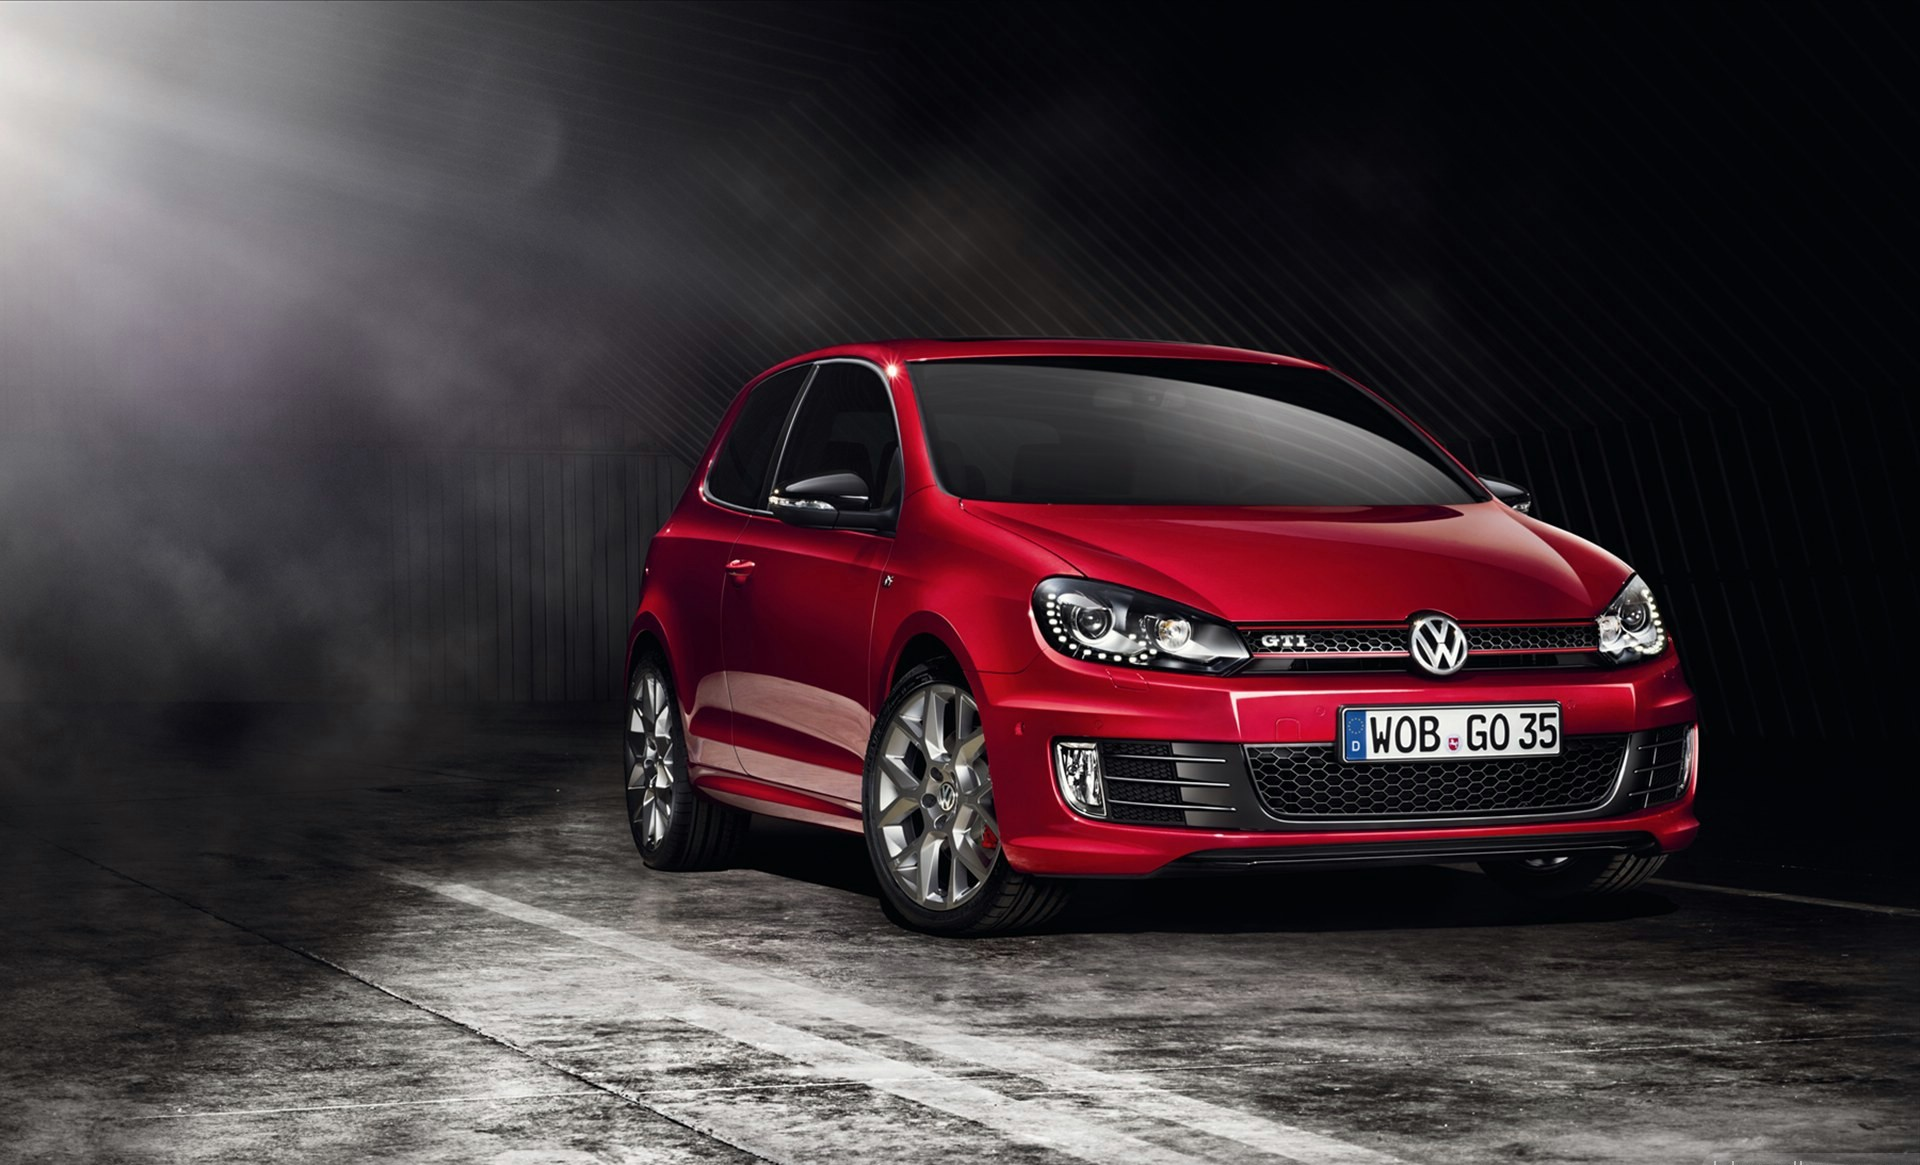 Volkswagen Golf Gti Red - HD Desktop Wallpapers